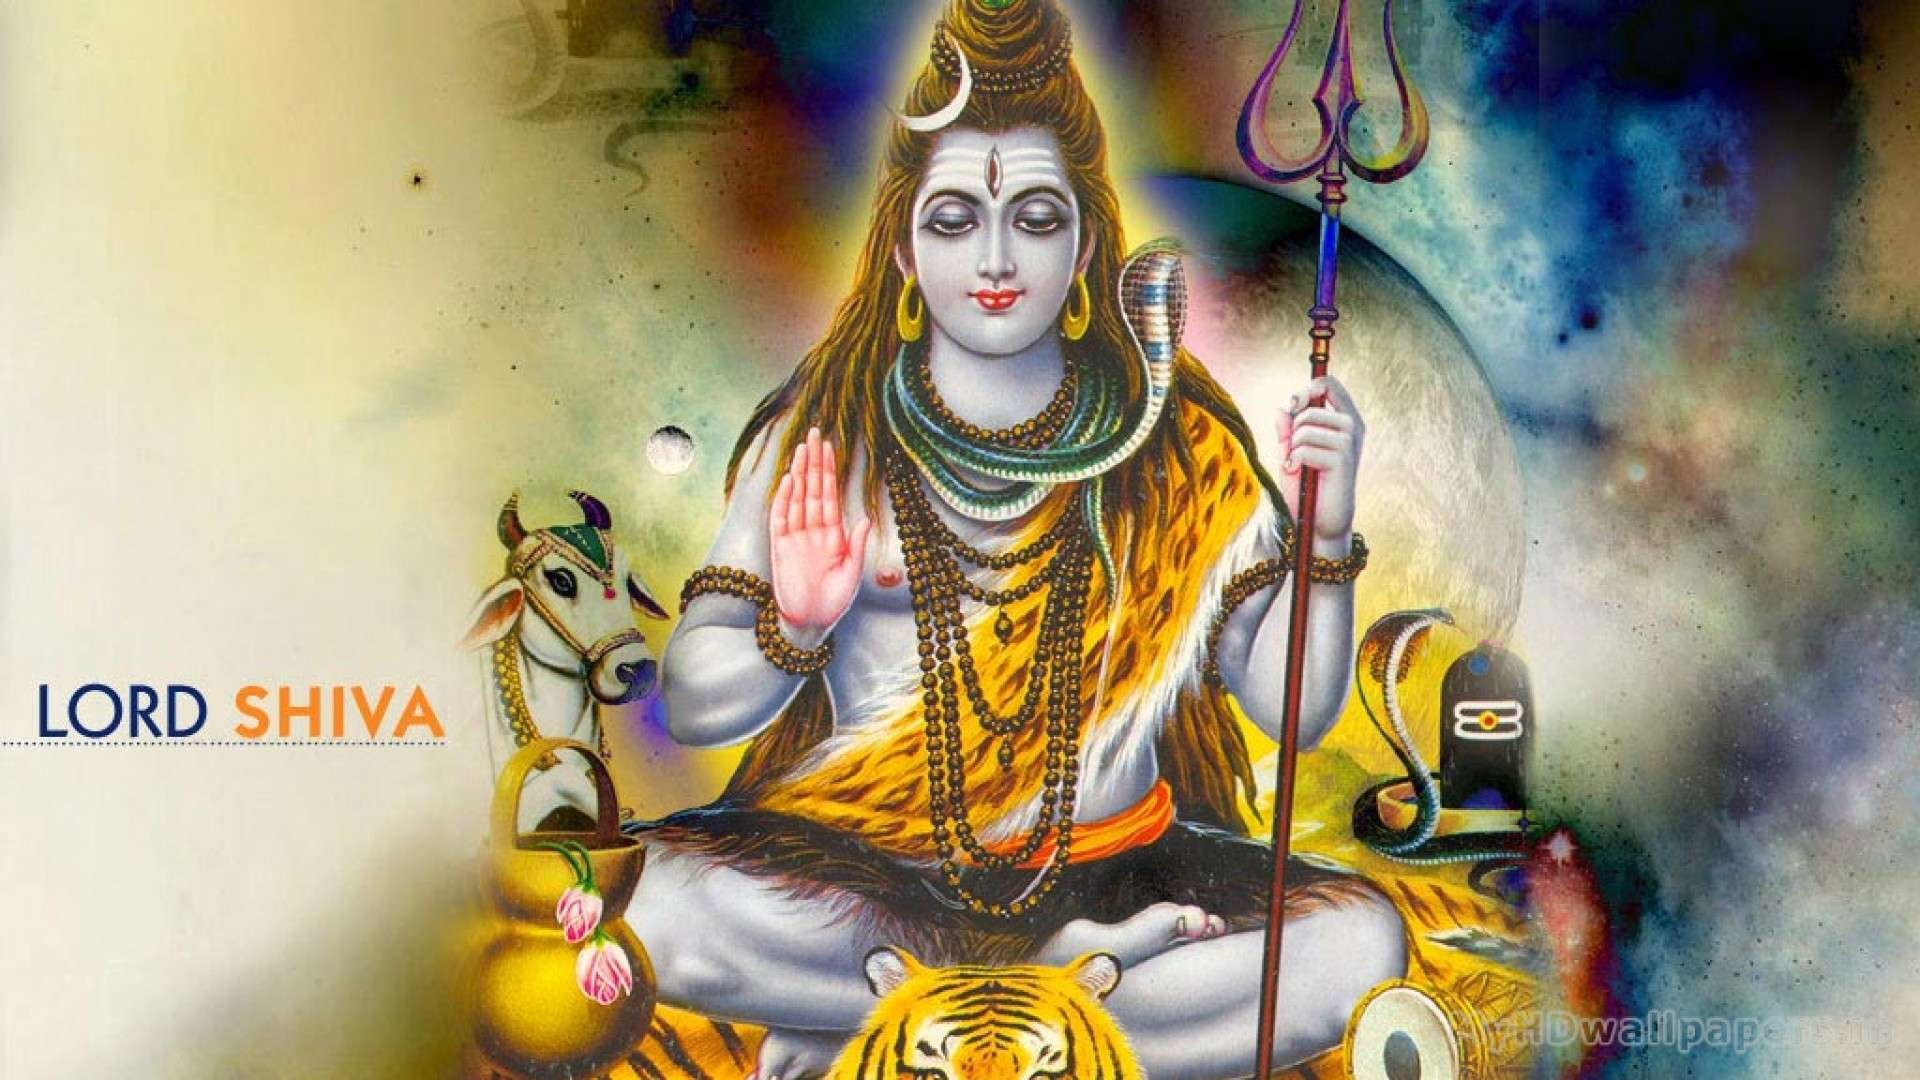 Lord Shiva New Hd Wallpapers Download Desktop Background: Shiva Lord Wallpapers Desktop : Hd Wallpapers